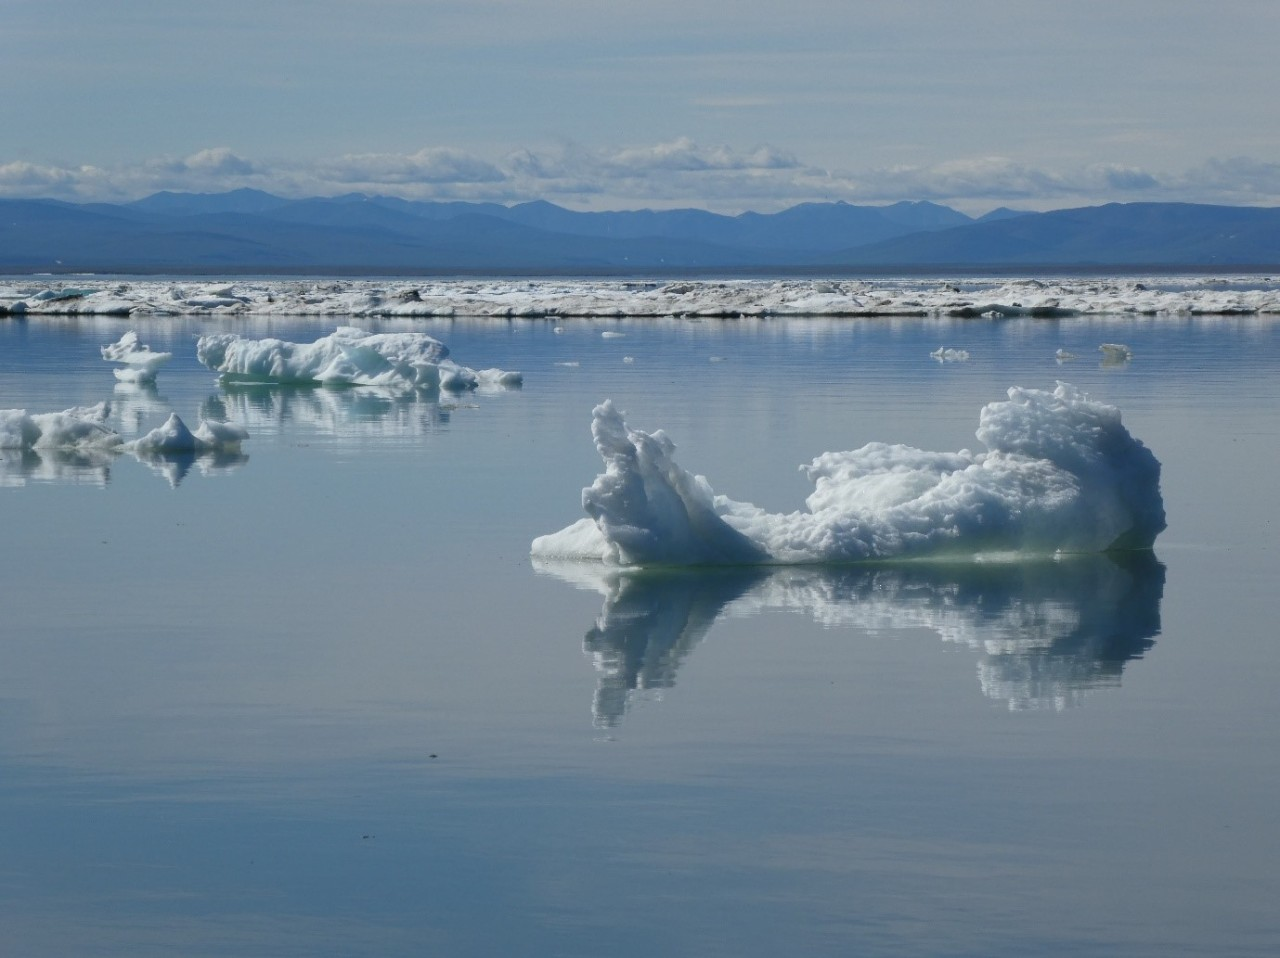 Facing climate change in the Canadian Arctic